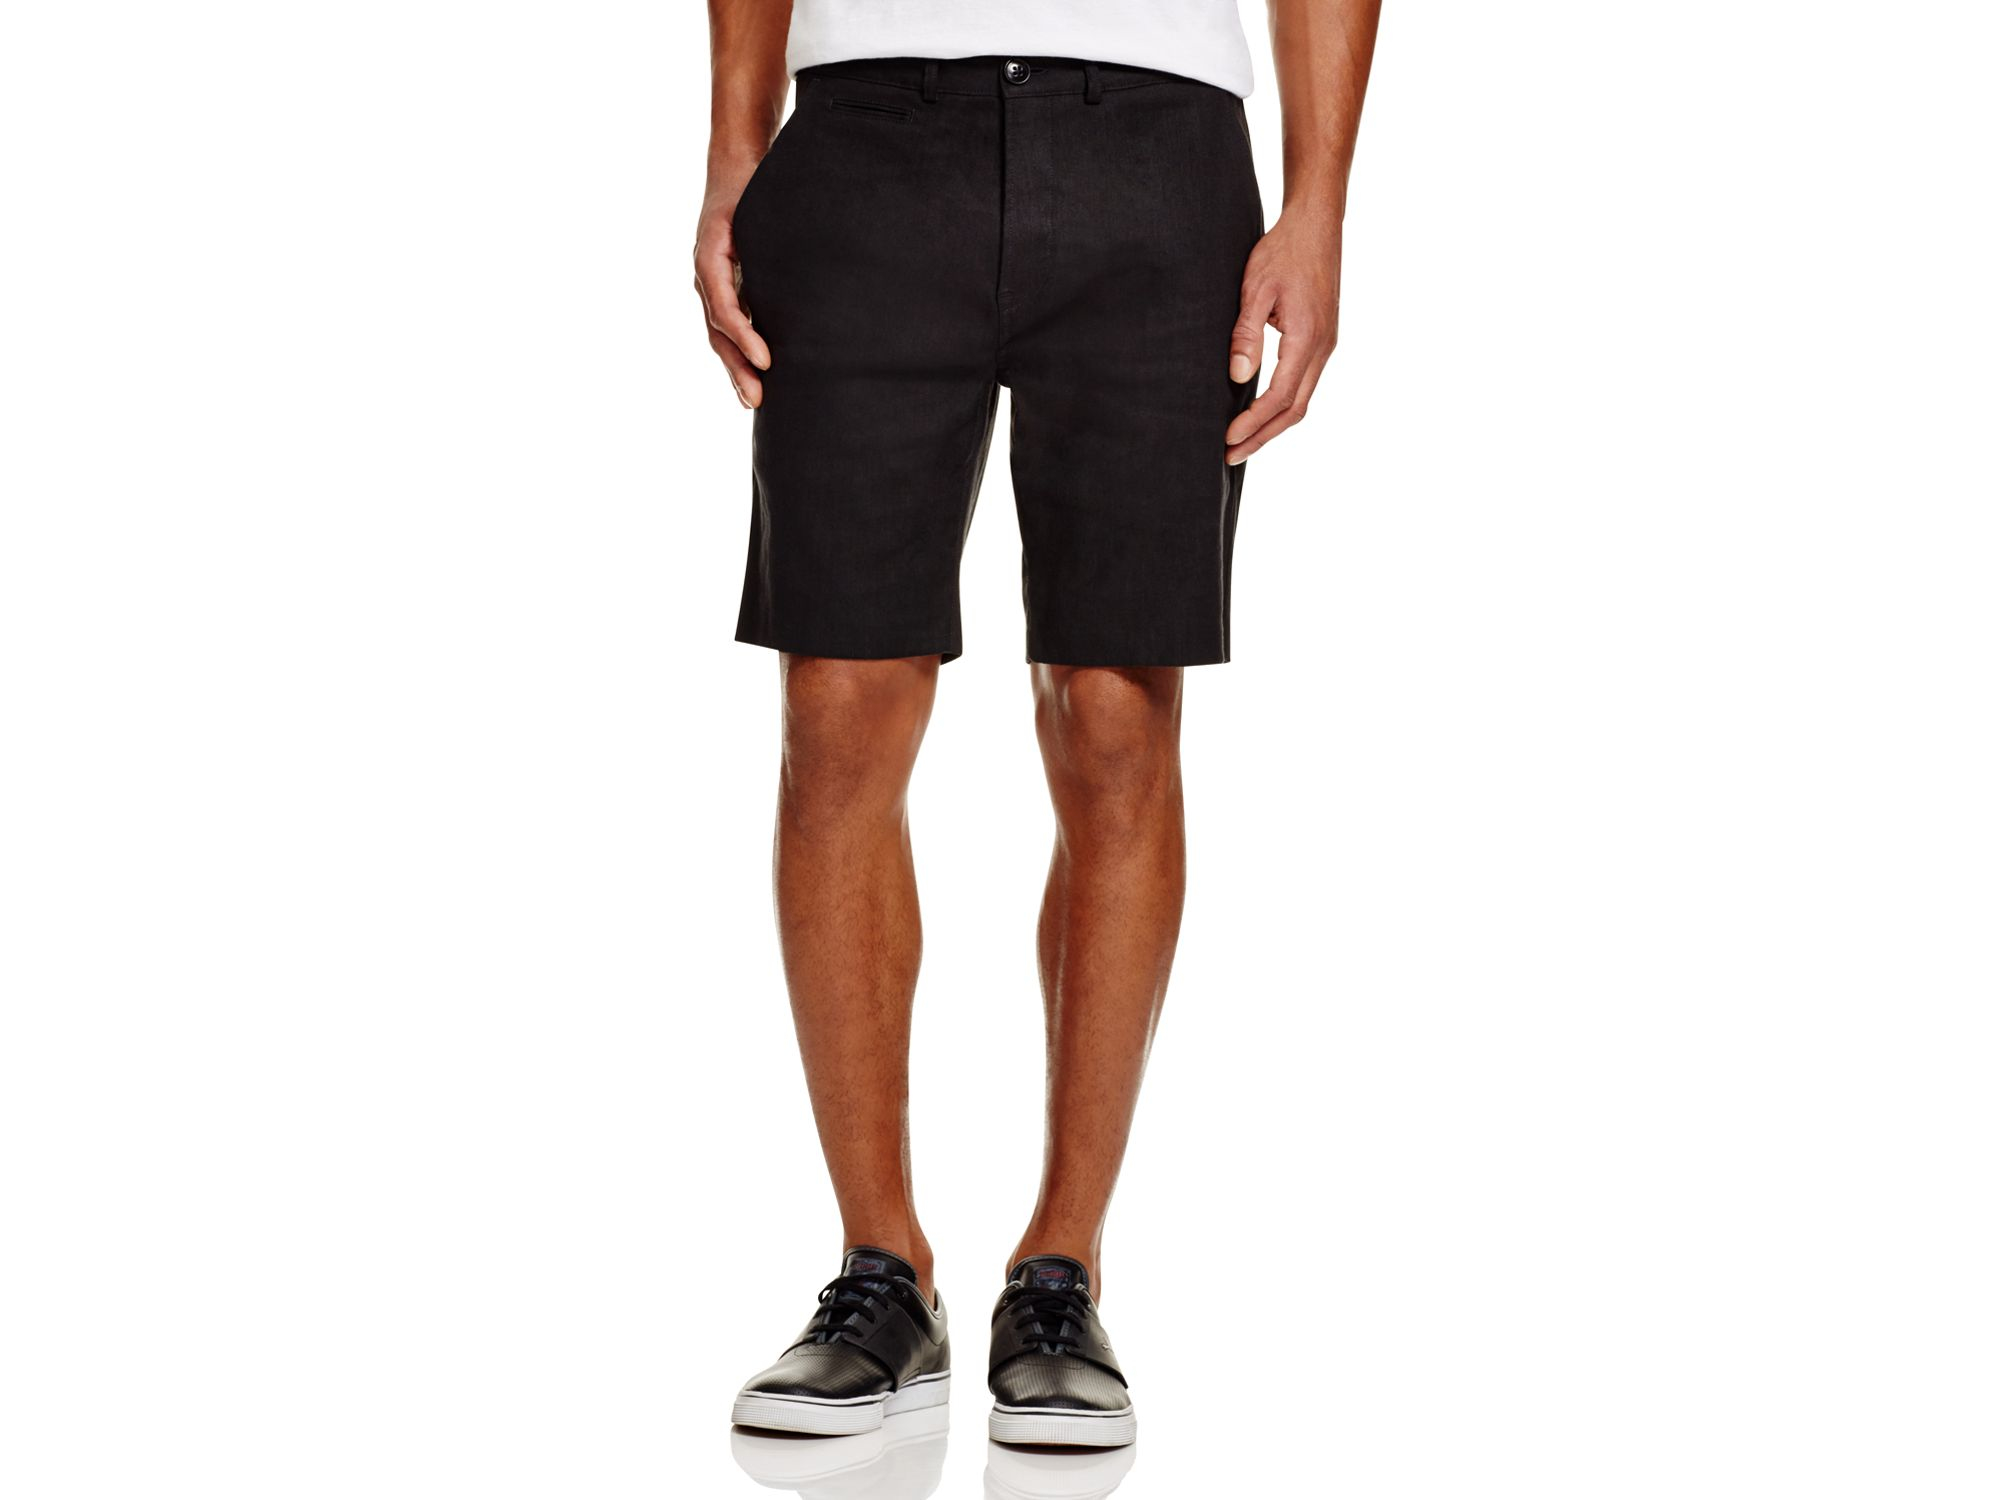 Paul smith Standard Fit Shorts in Black for Men